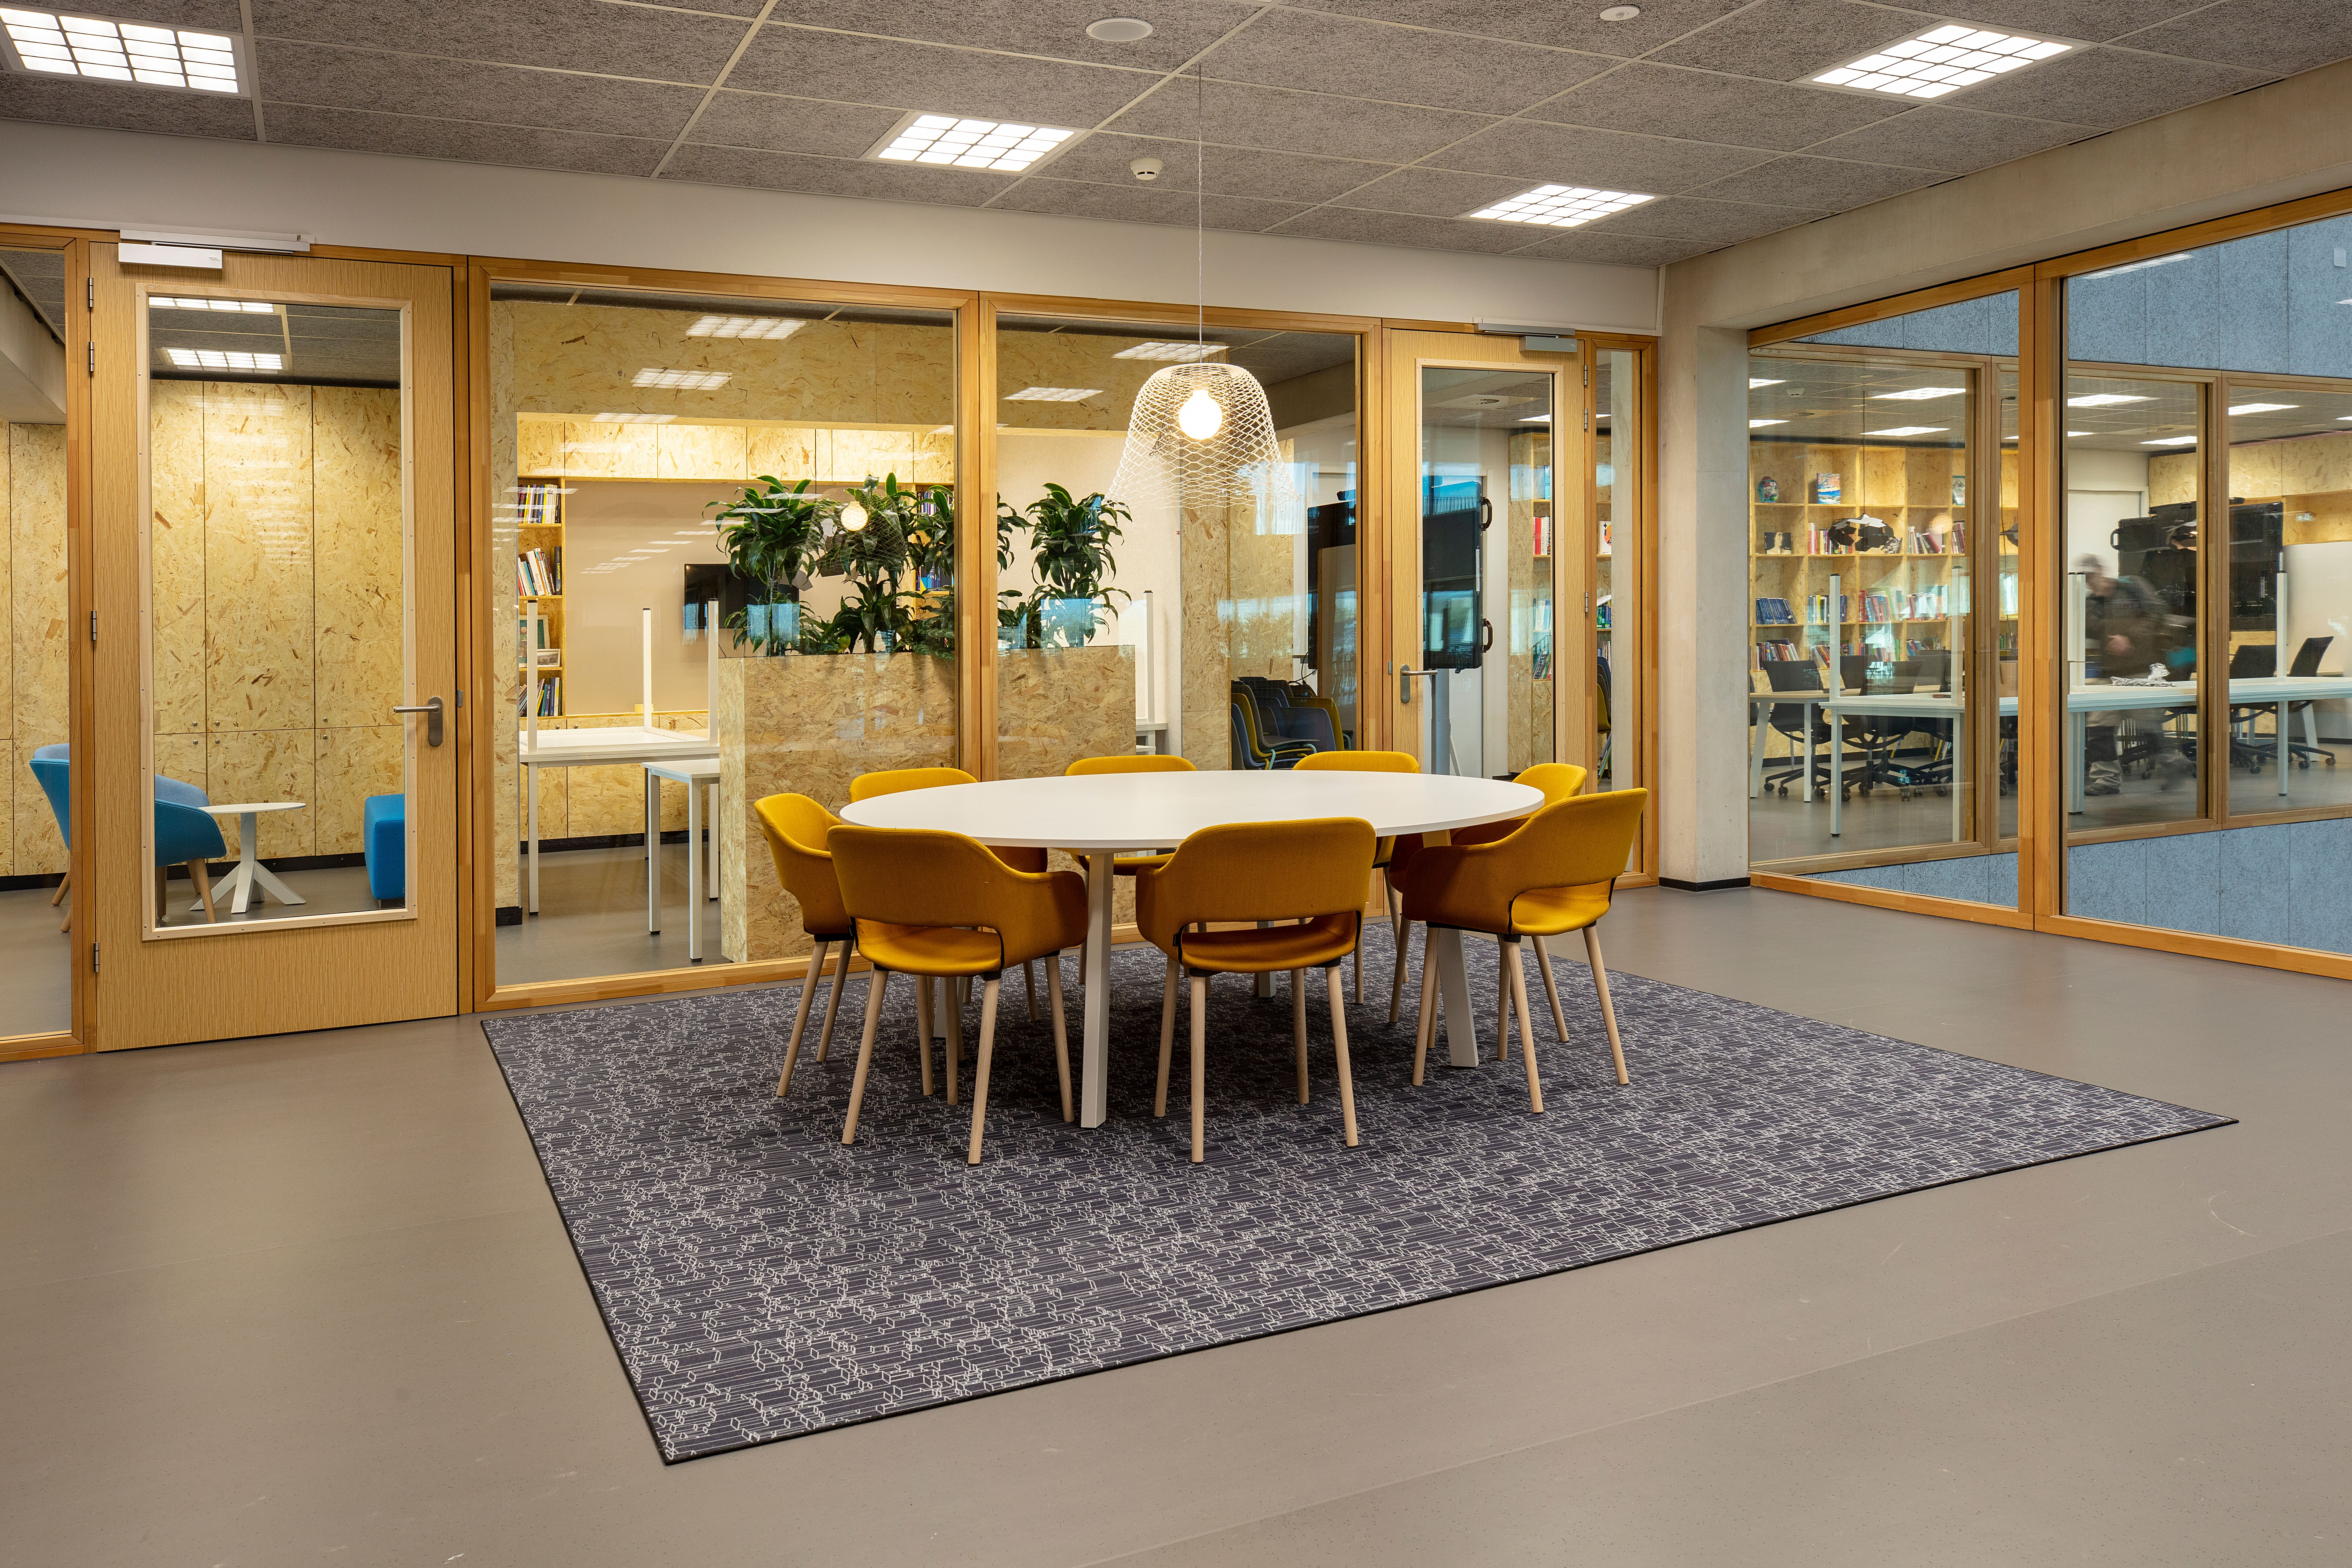 Gispen education project Fontys academy for creative industries in Tilburg L0A0092